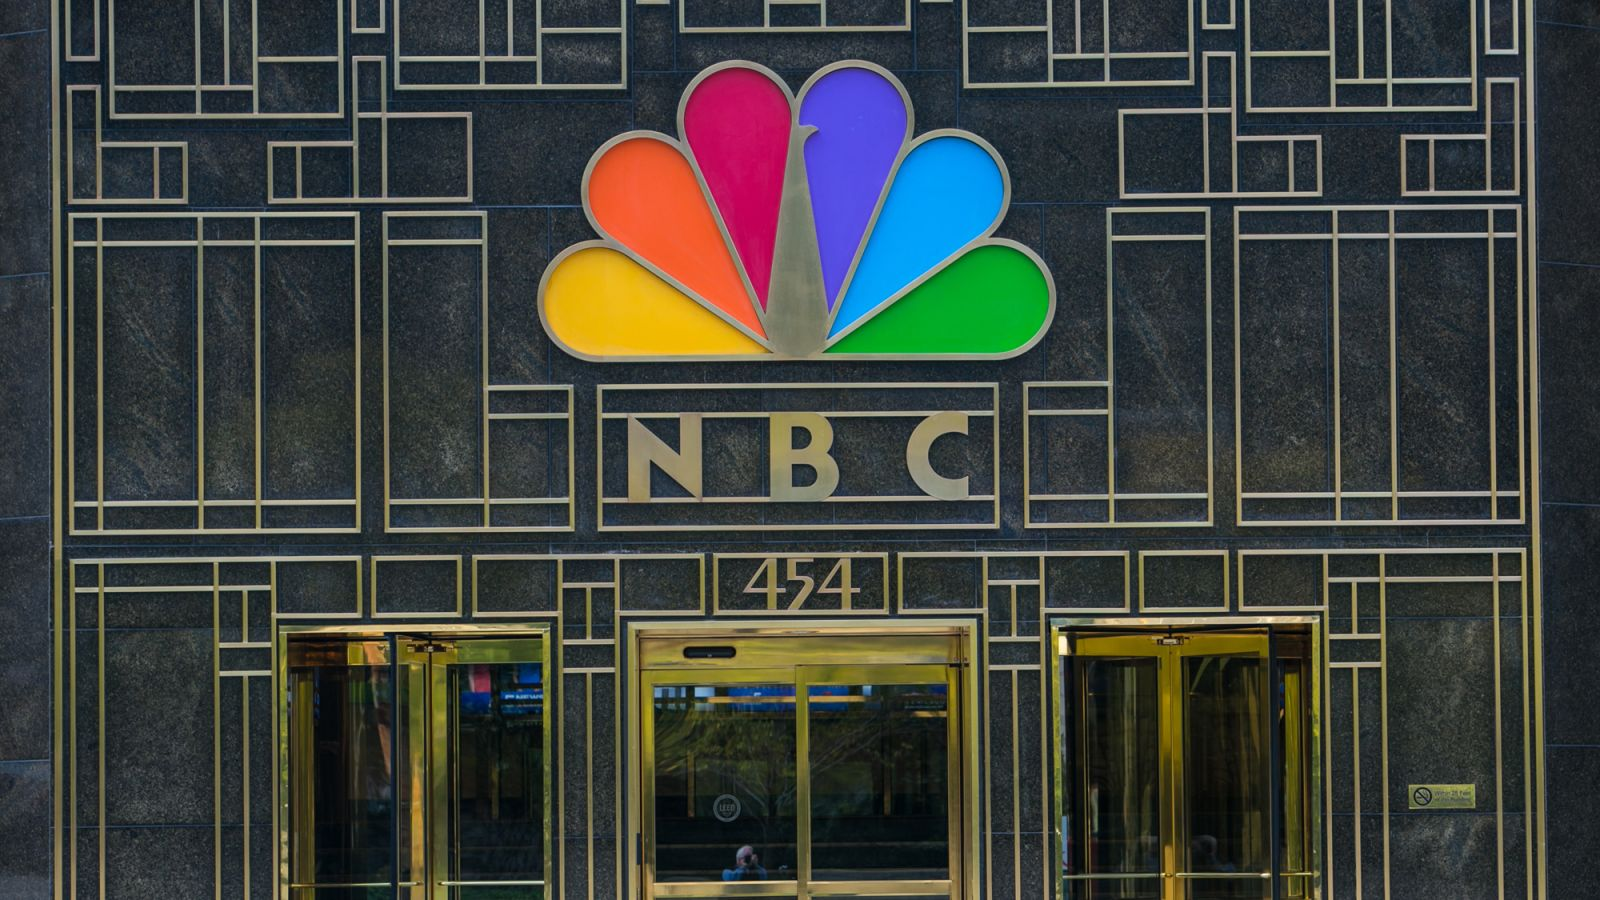 NBC Announces Fall Cancellation Lineup https://t.co/I3ObdK6NfX https://t.co/0uYMwDKAXf